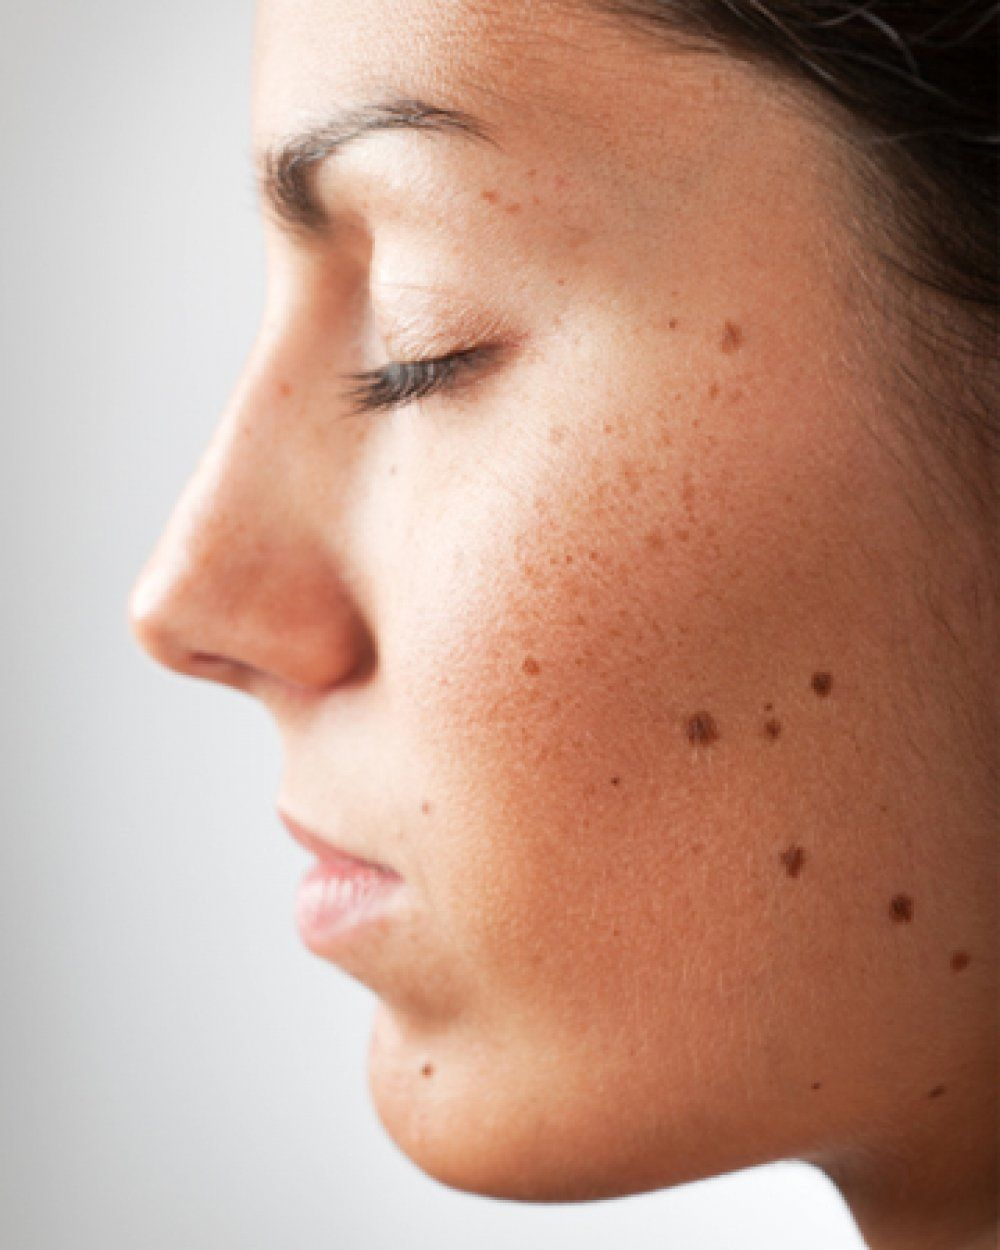 How to remove a birthmark at home without harming the skin